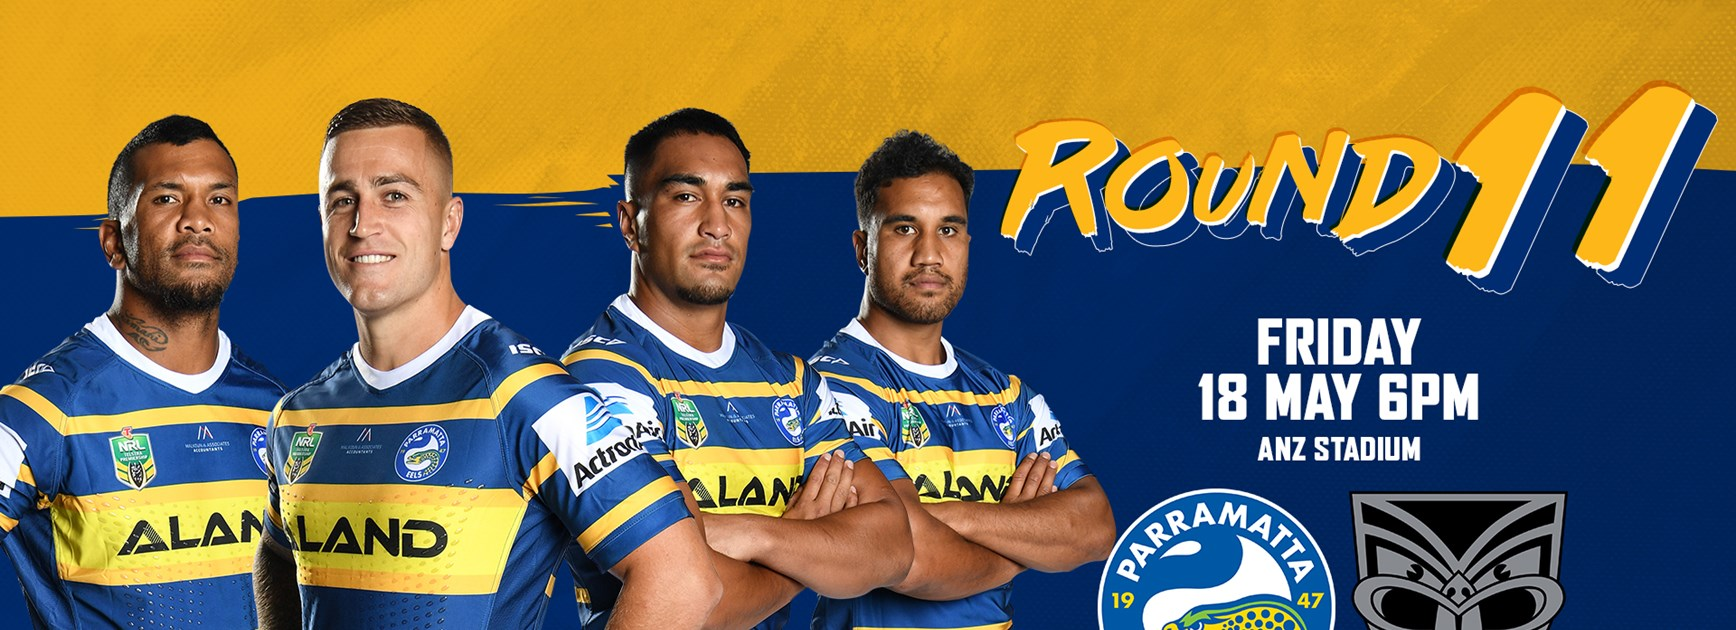 Eels v Warriors Round 11 Team List